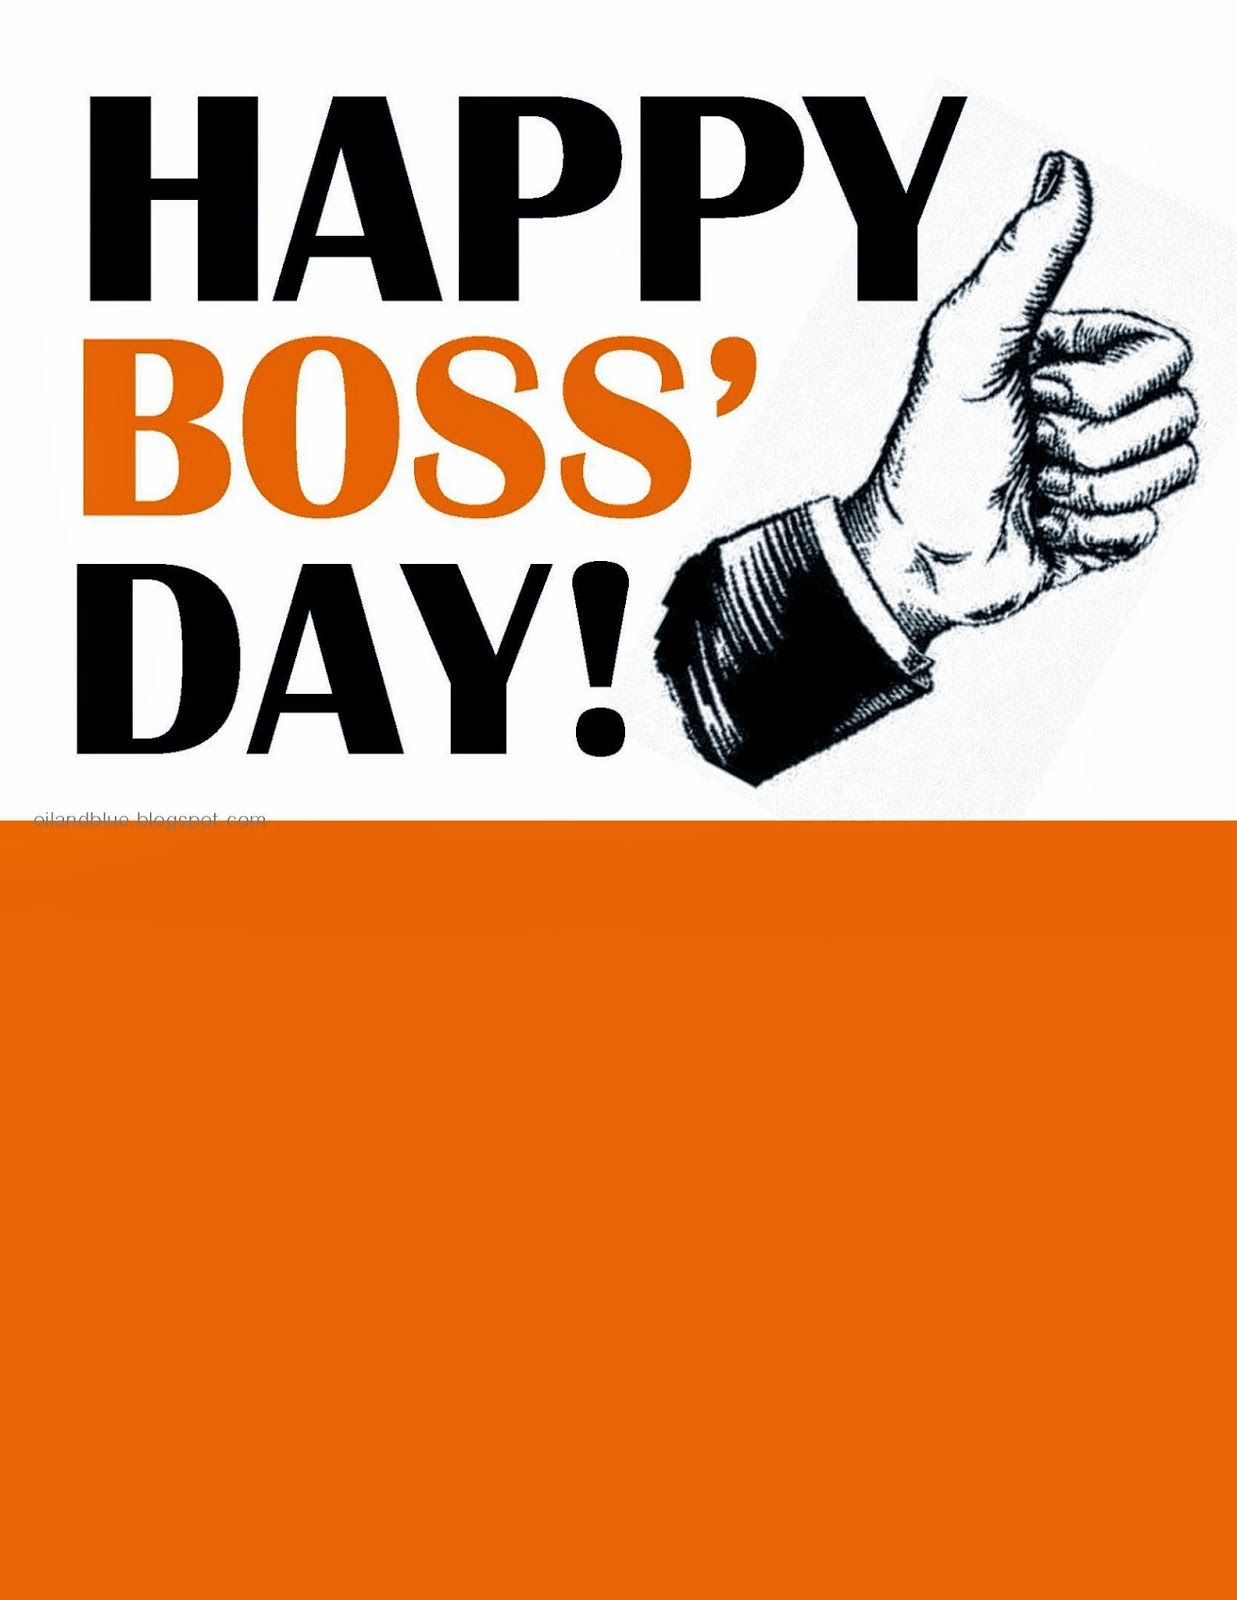 This is a graphic of Free Printable Boss's Day Cards with happy